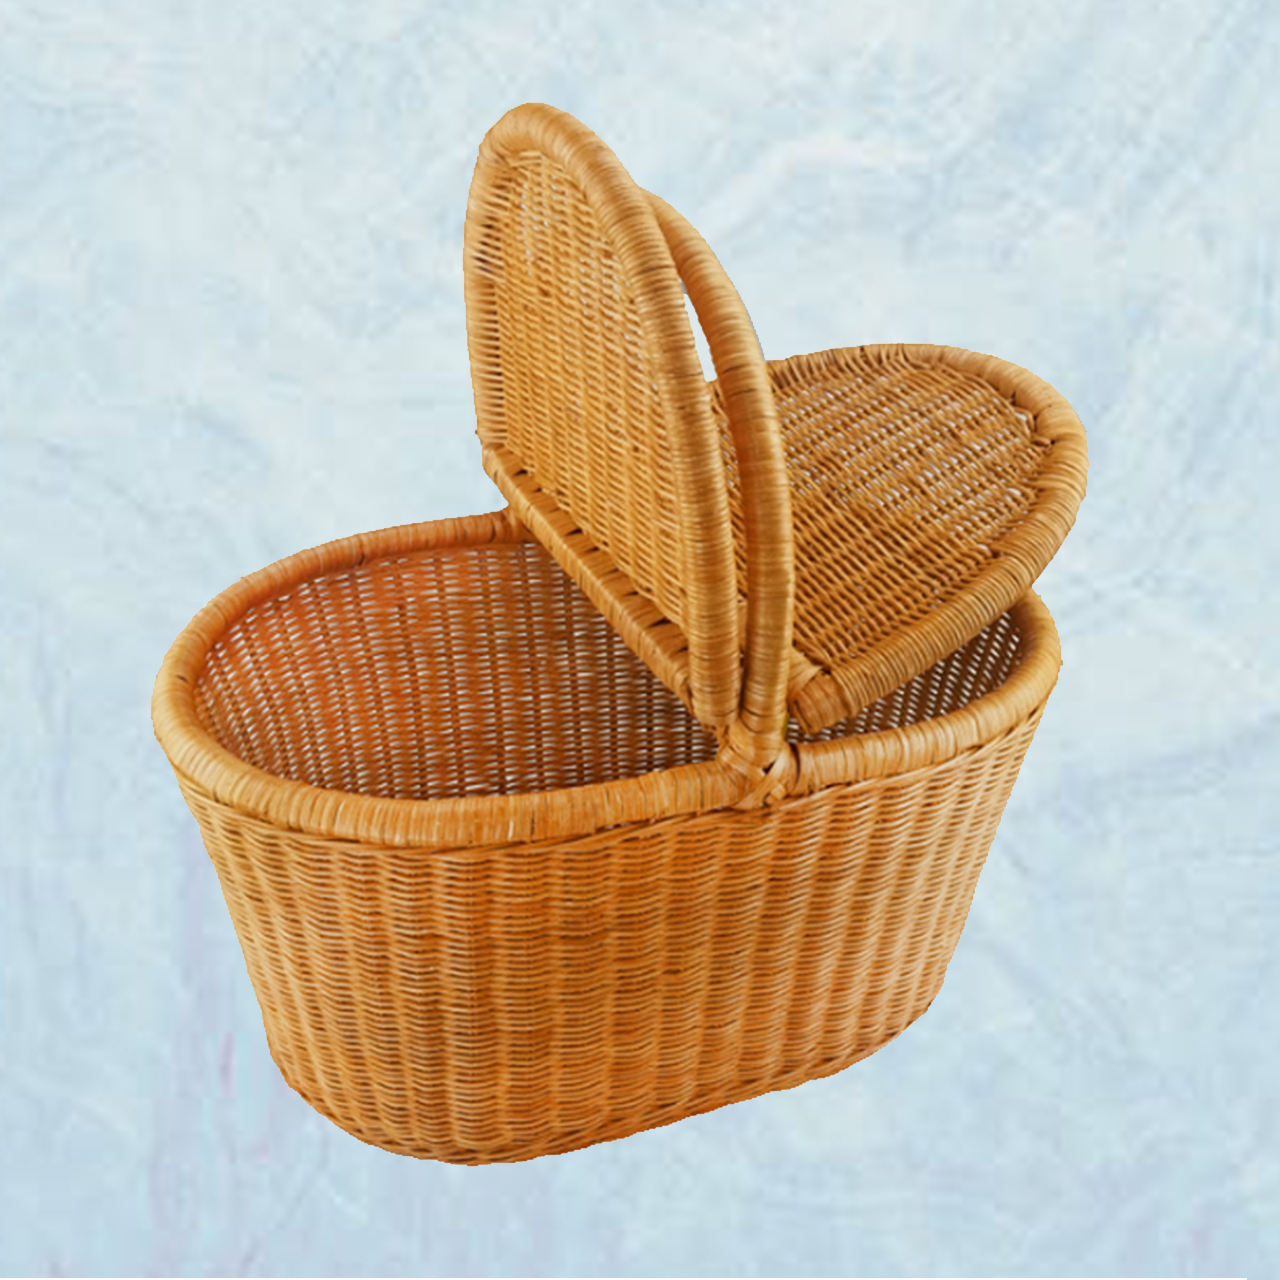 Best Product to Dropship Rattan Wicker Tote Bag Basket with lid Travel Accessory Basket Bag